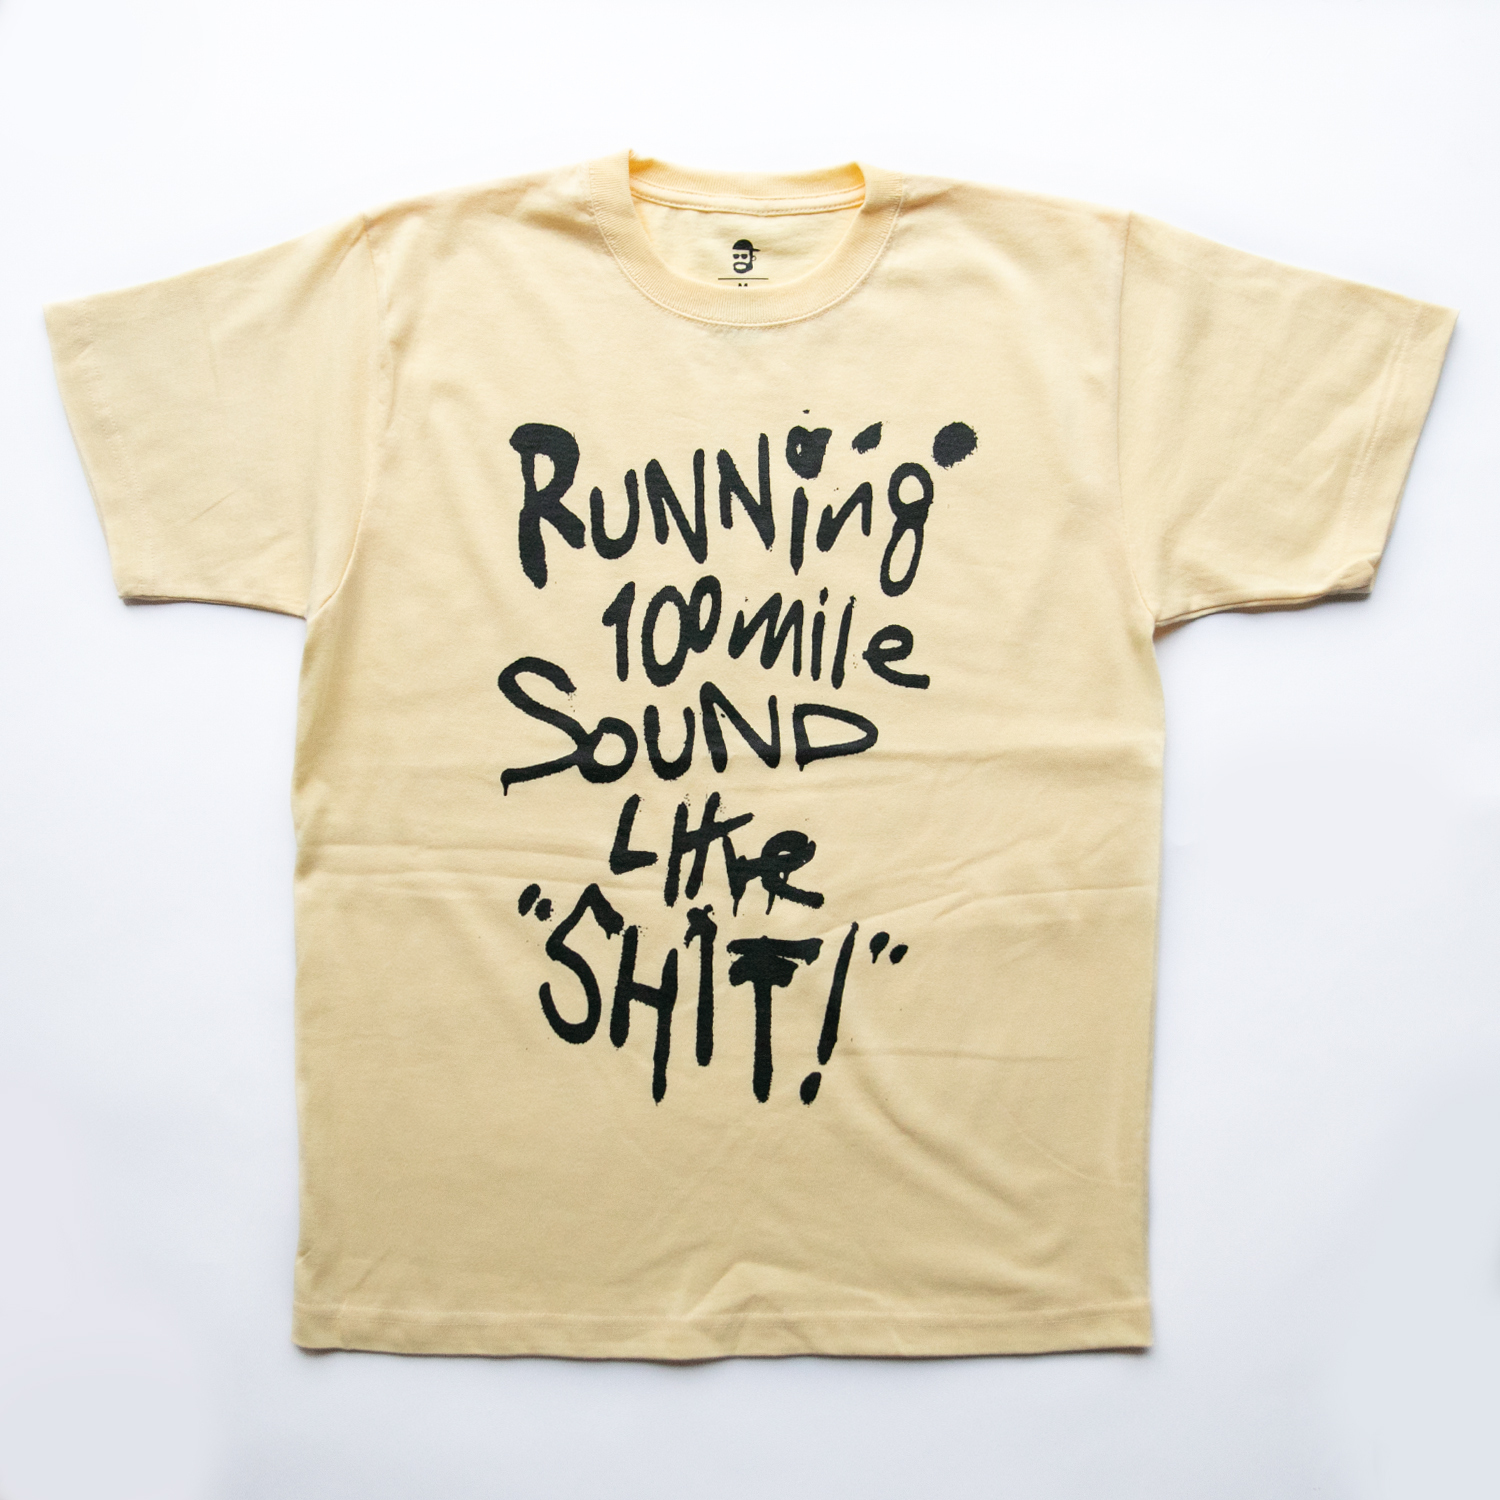 Running 100mile Sounds Like SHIT! t-shirt by RYUJI KAMIYAMA (YELLOW)